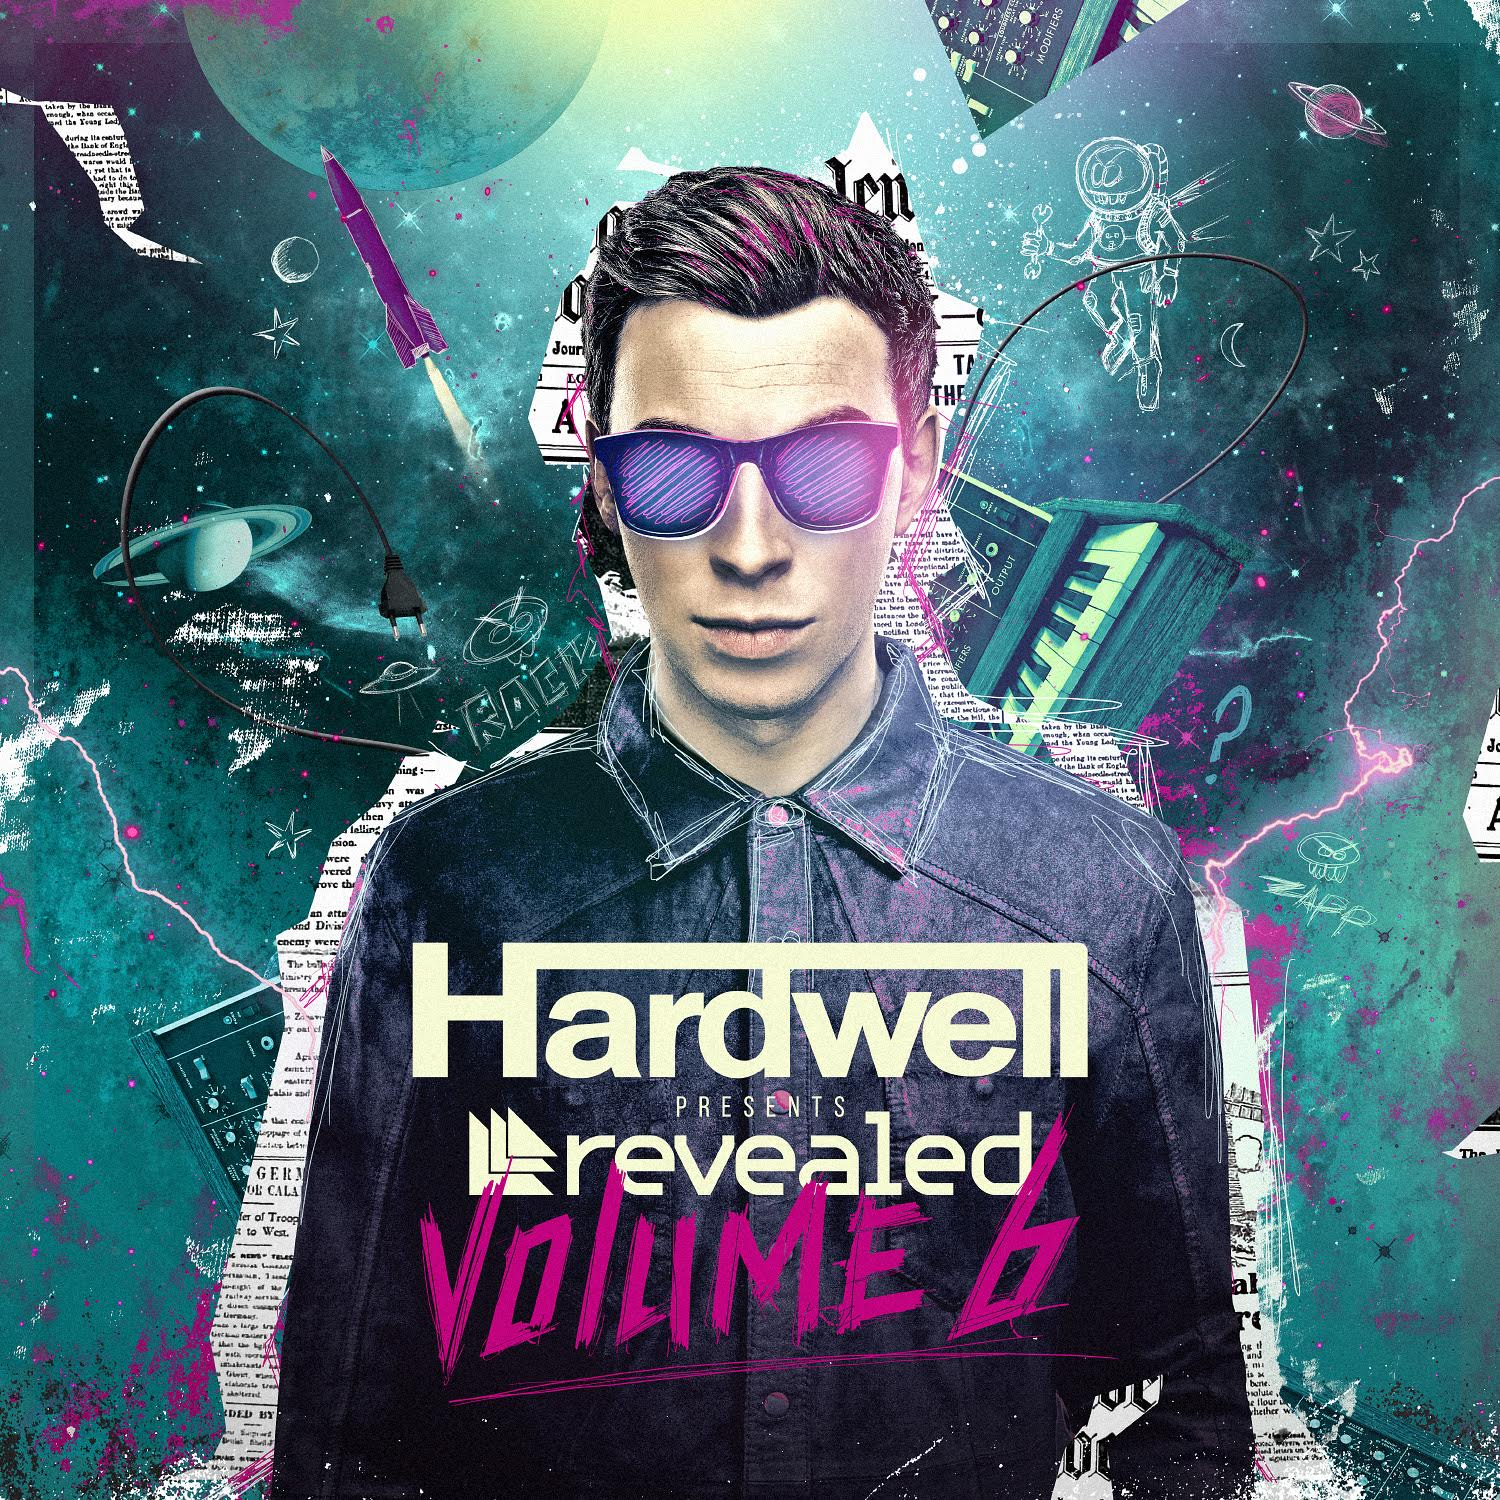 Hardwell-revealed-volume-6